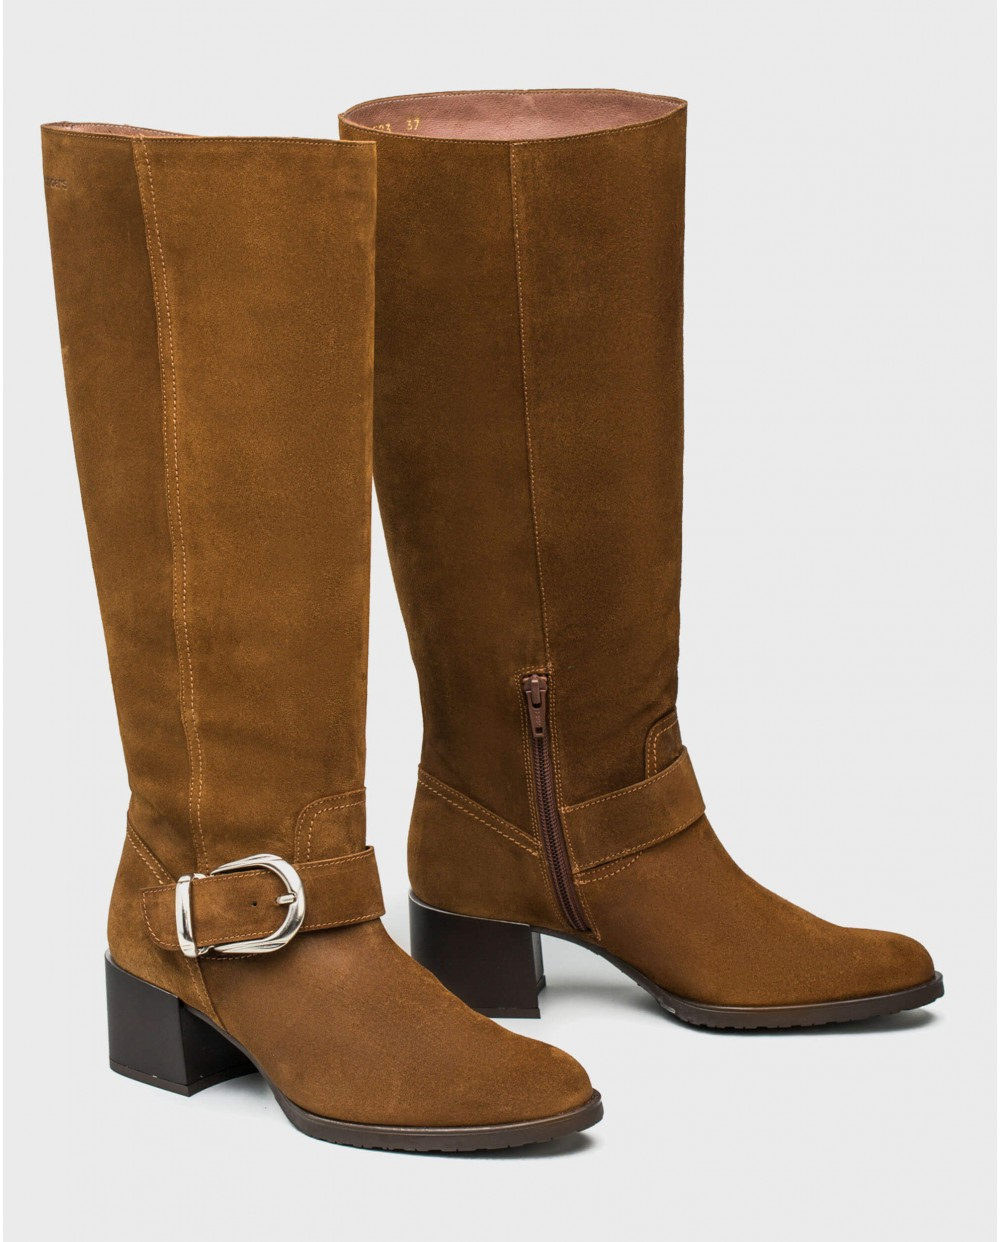 Wonders-Boots-Waterproof leather boot